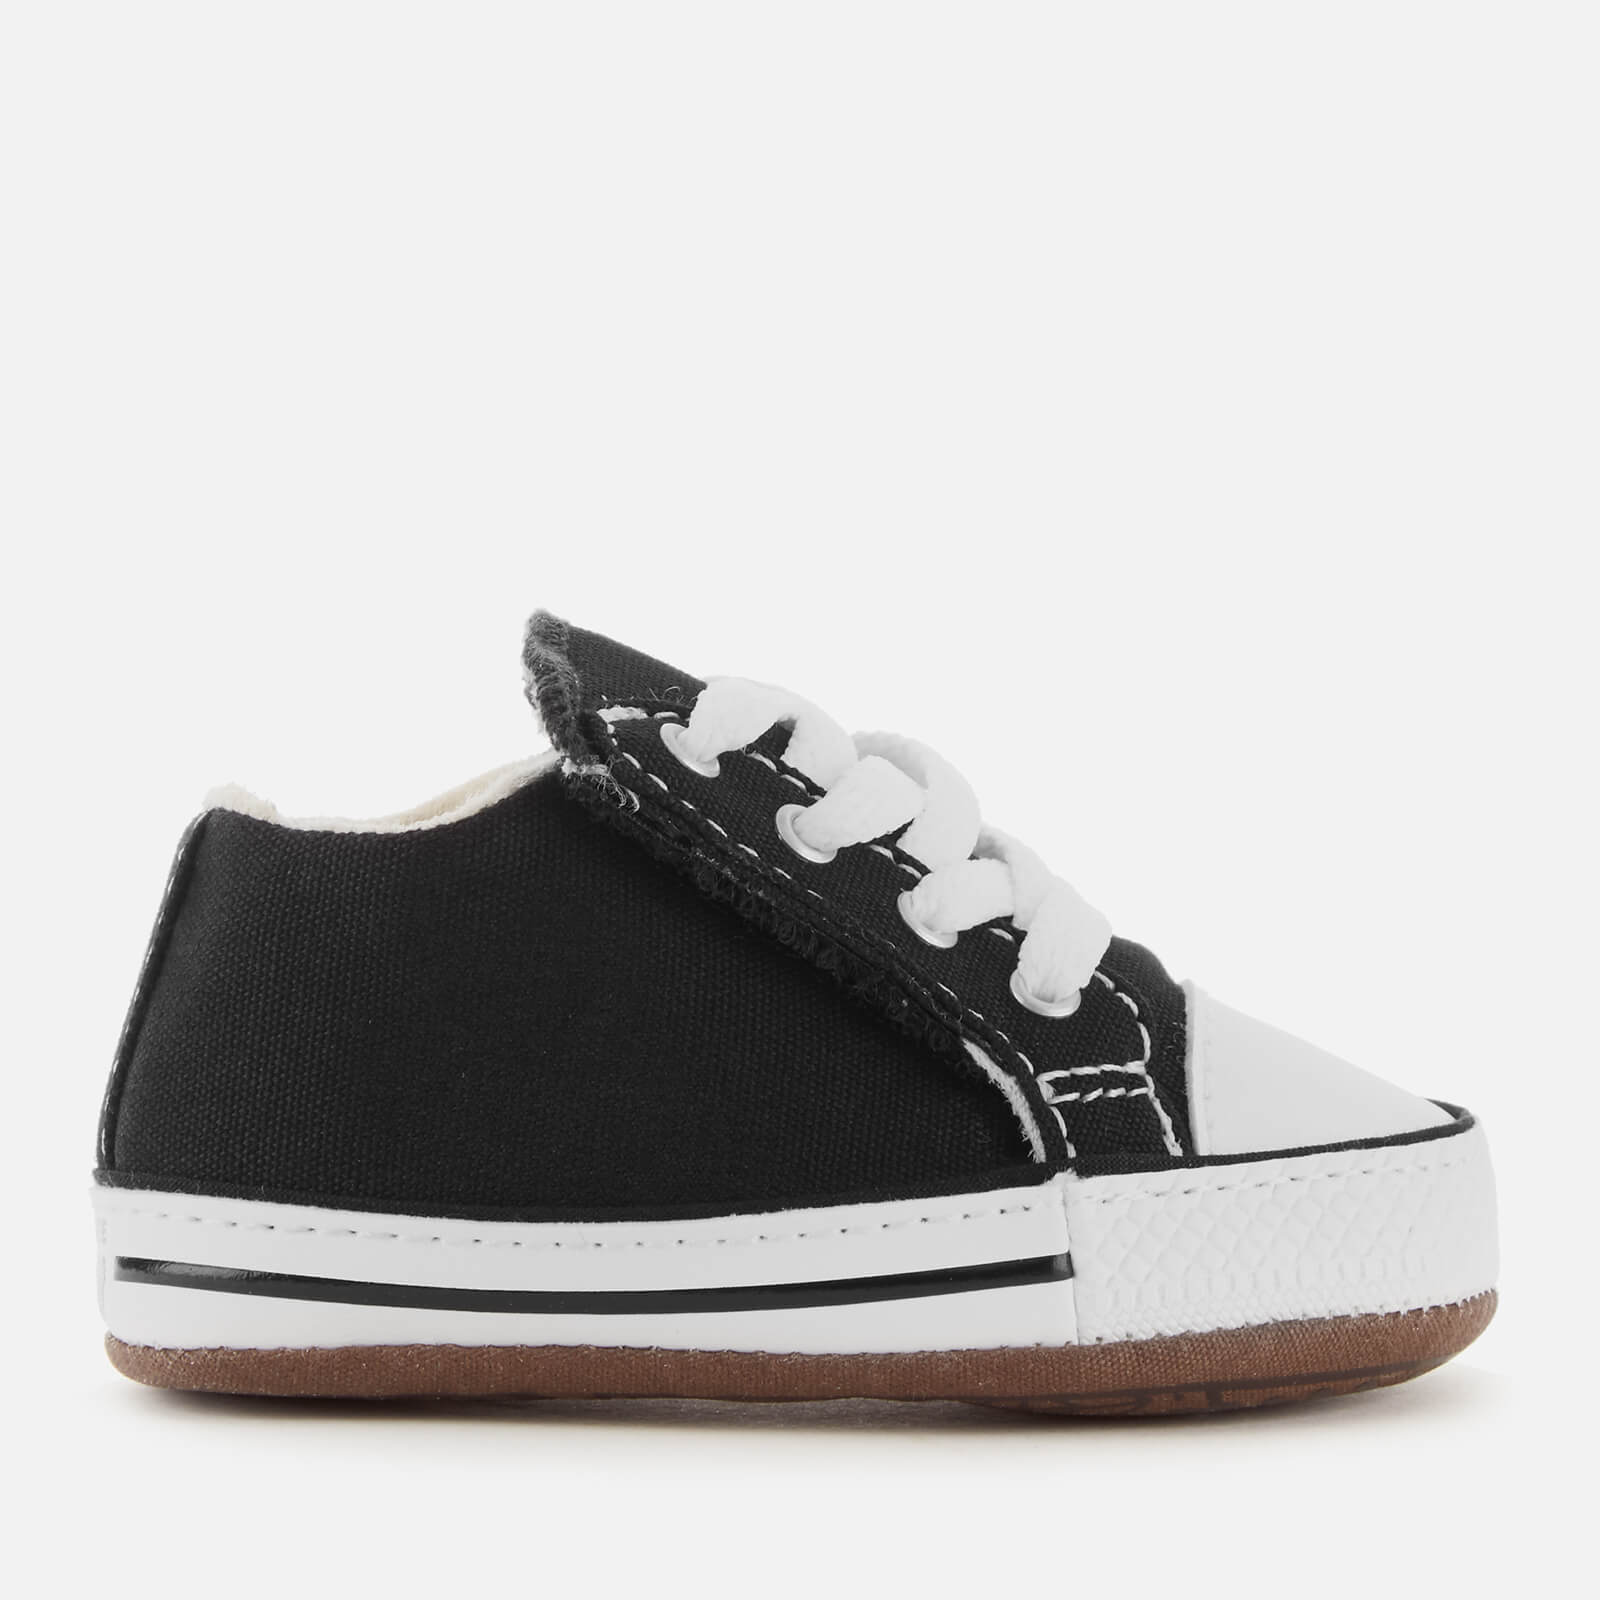 Converse Babies Chuck Taylor All Star Cribster Canvas Mid Trainers BlackNatural IvoryWhite